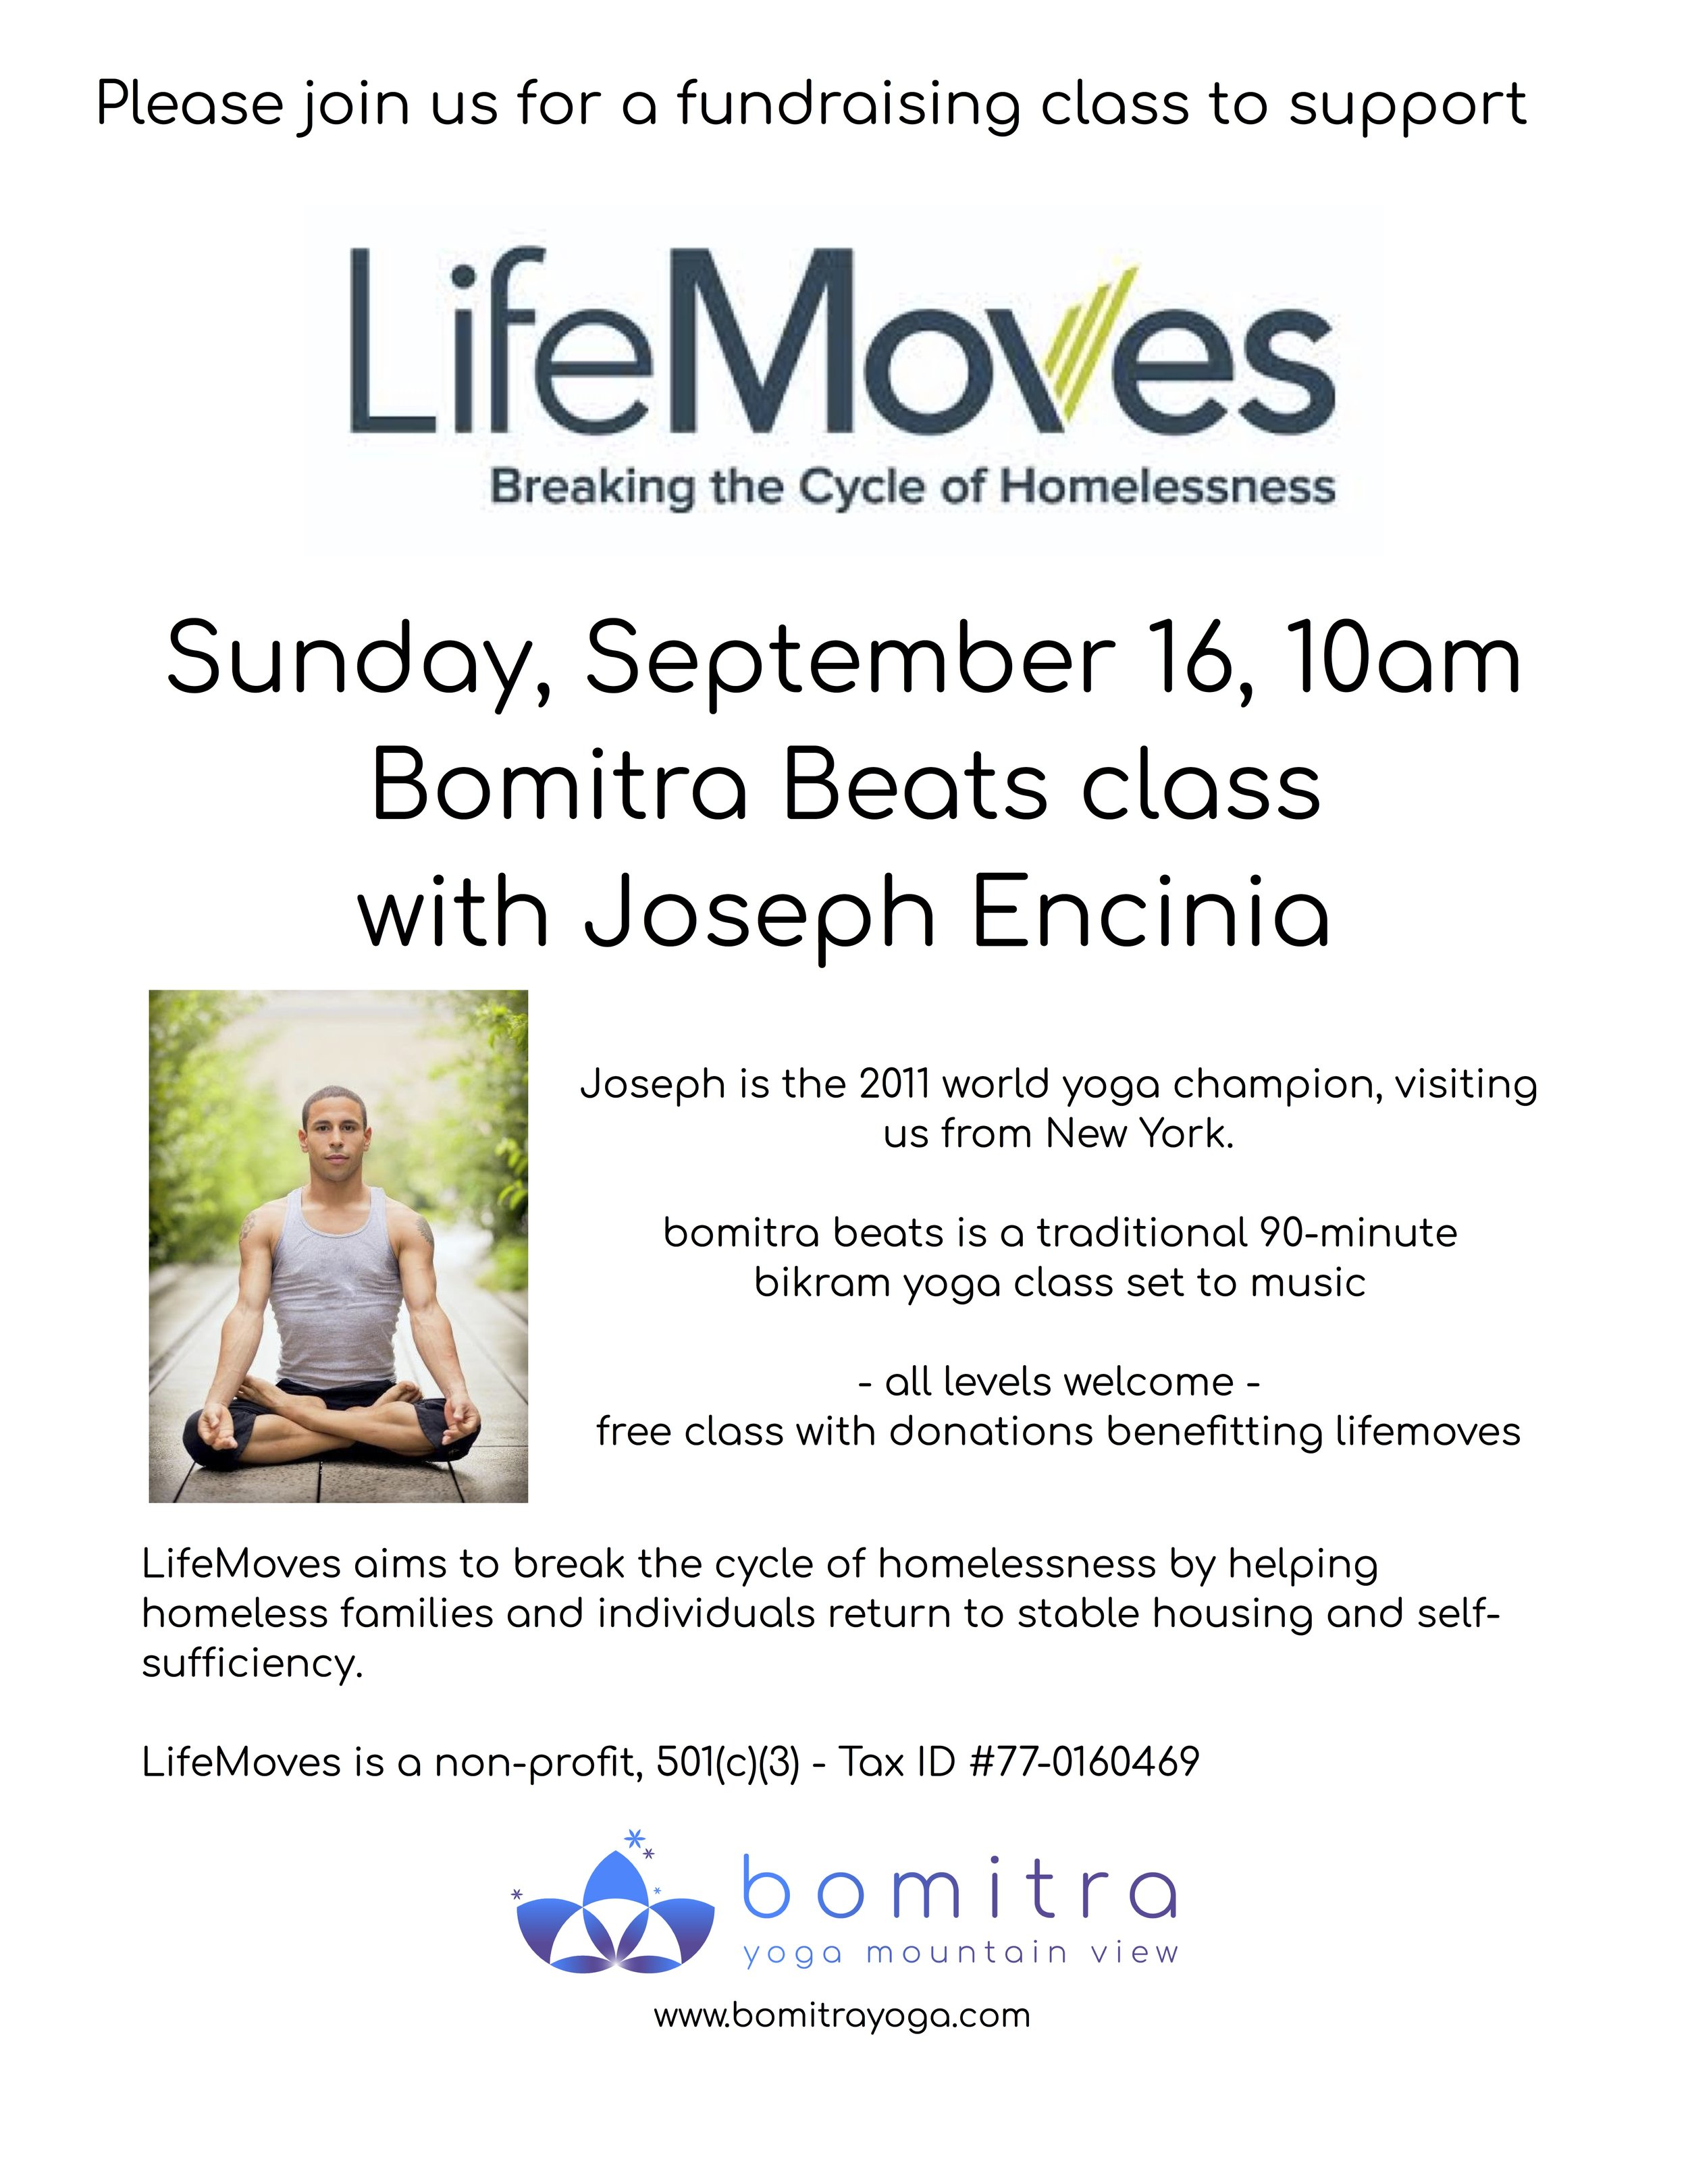 beats180916 lifemoves.jpg